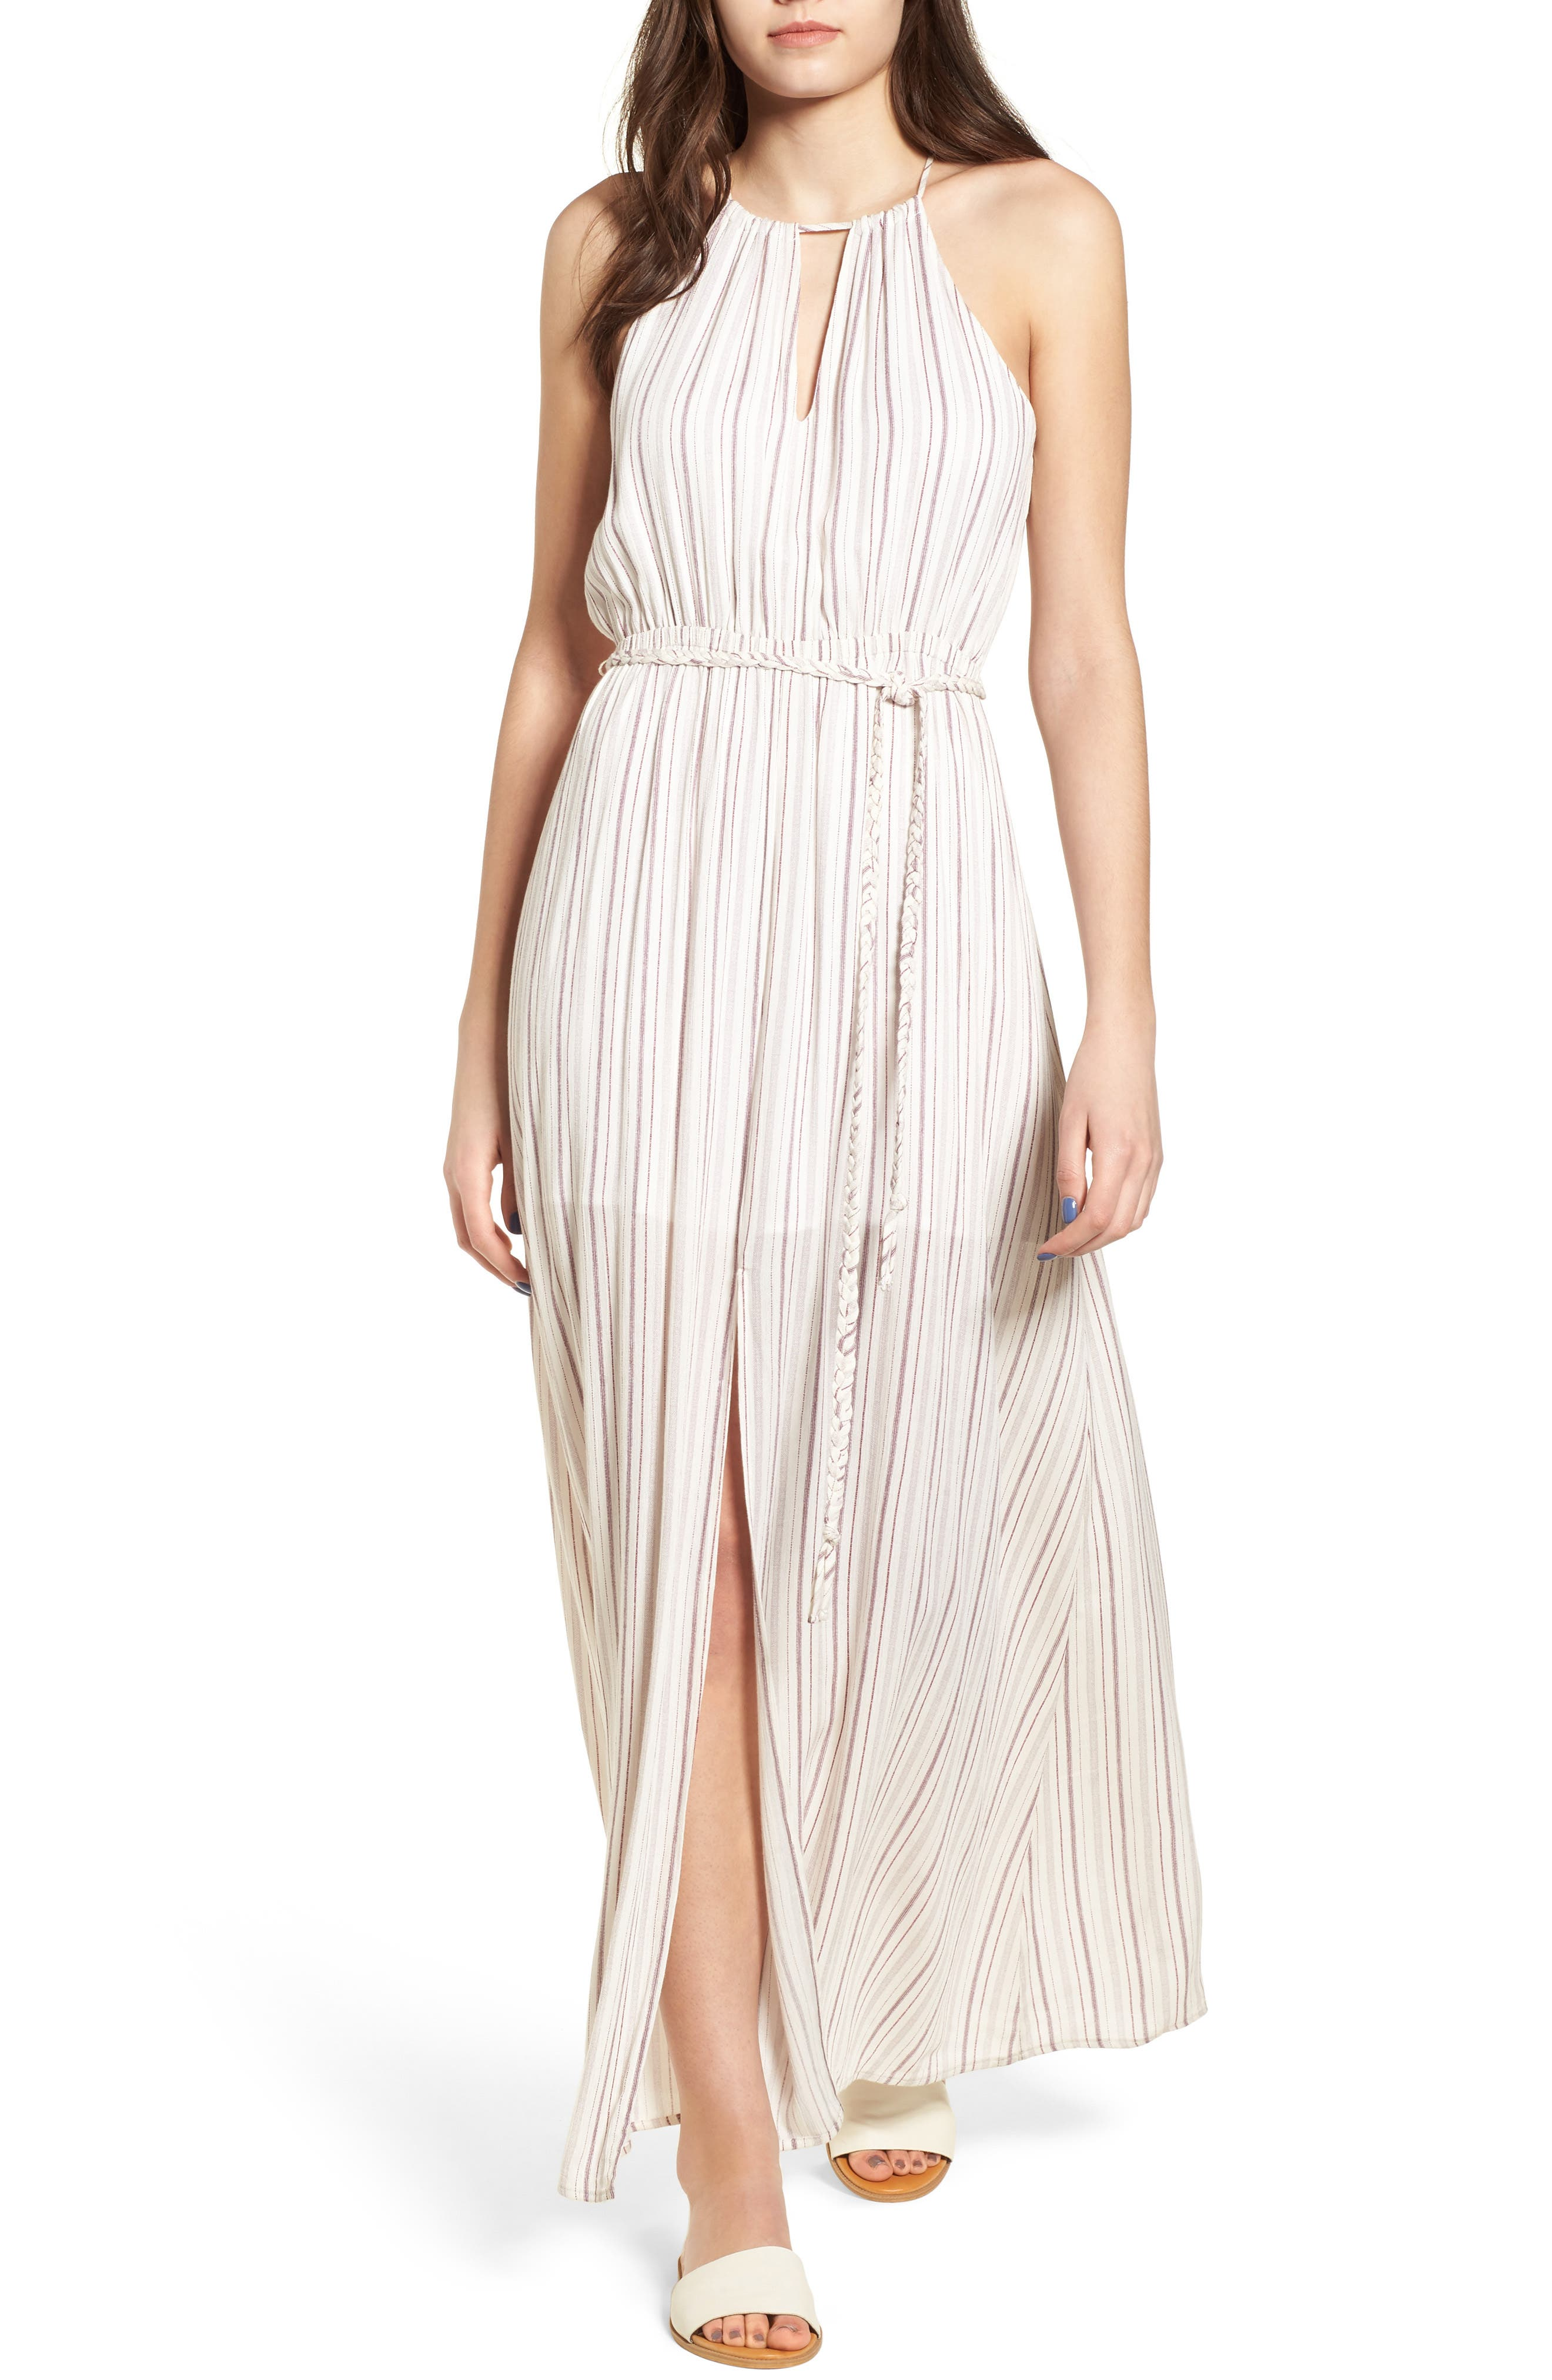 Daydreamer Stripe Maxi Dress,                             Main thumbnail 1, color,                             900